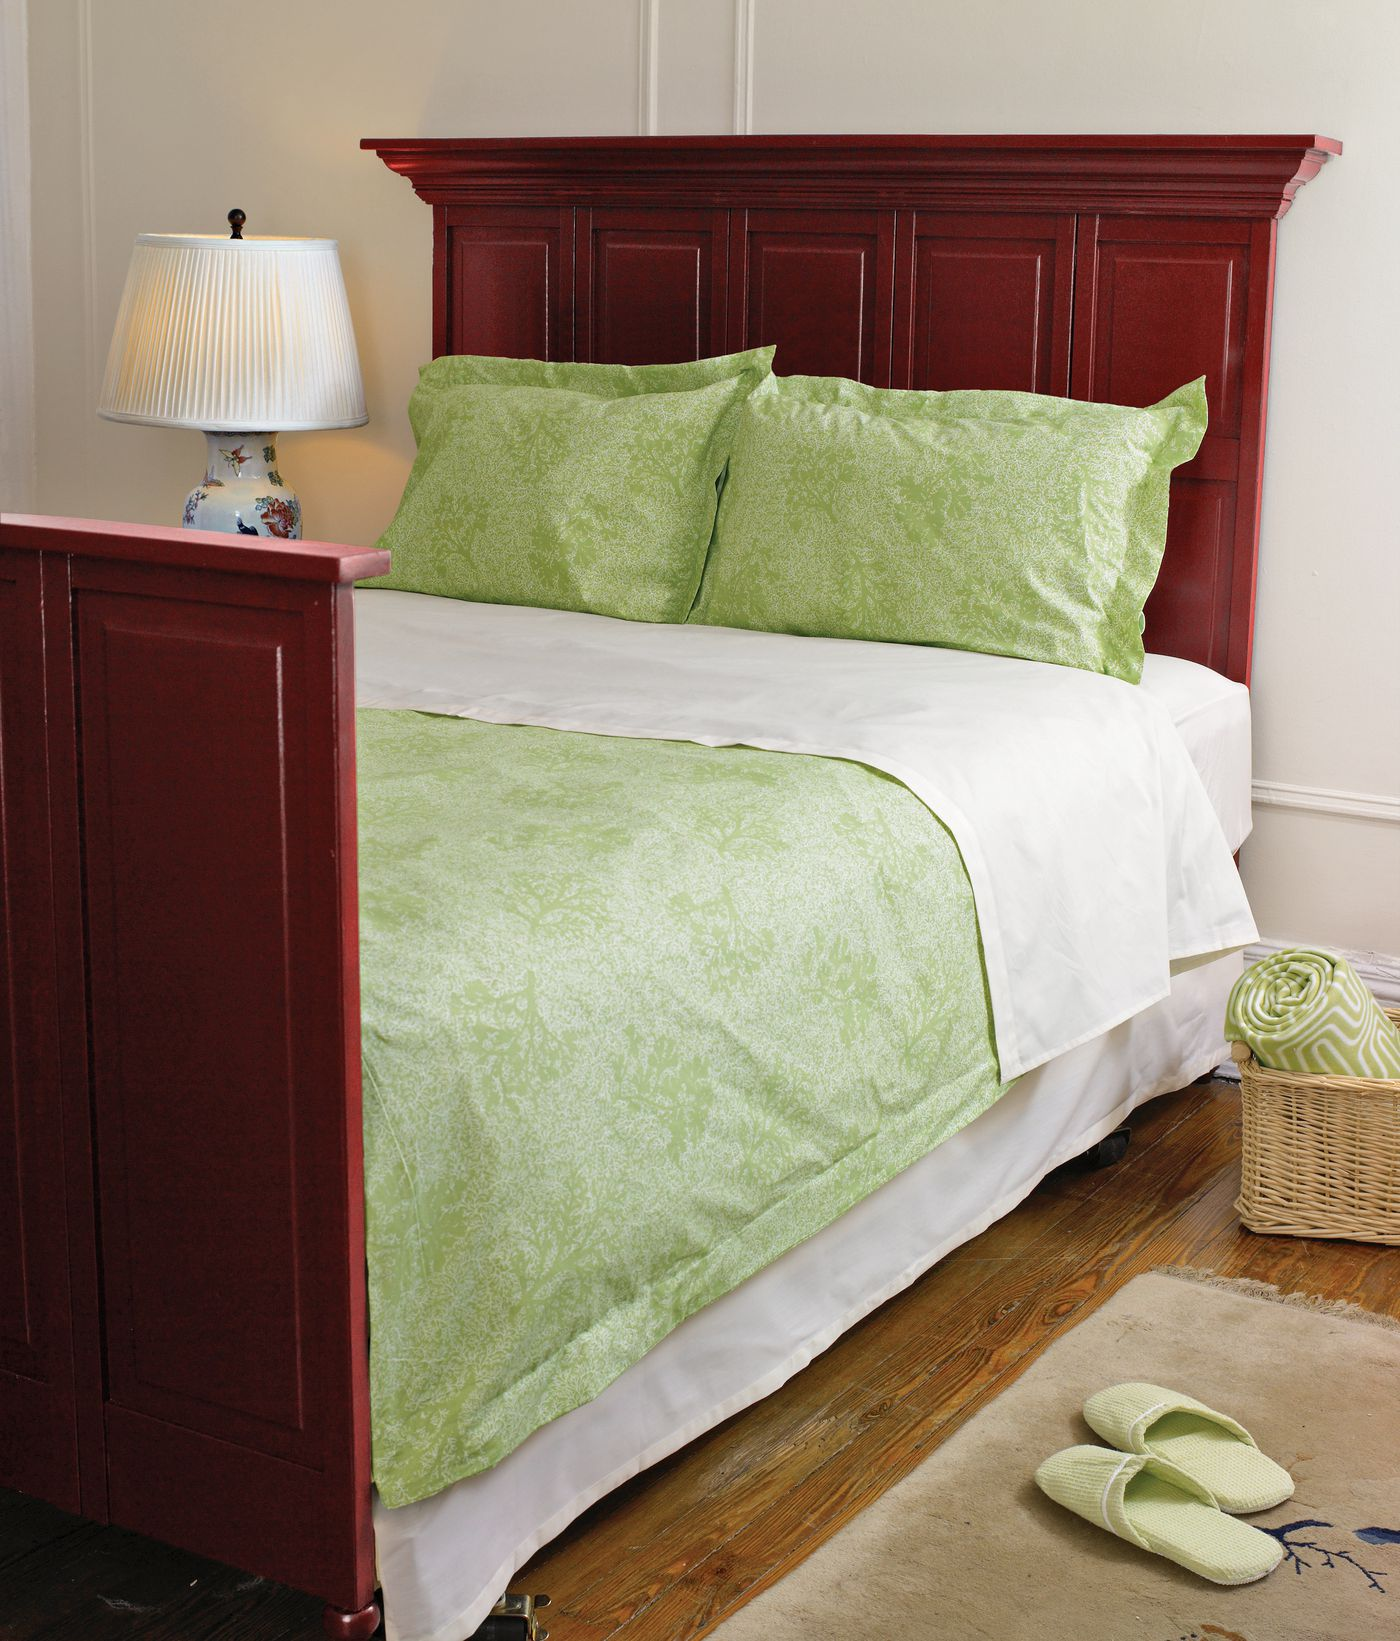 3 Ways to Build Your Own Bedroom Furniture - This Old House